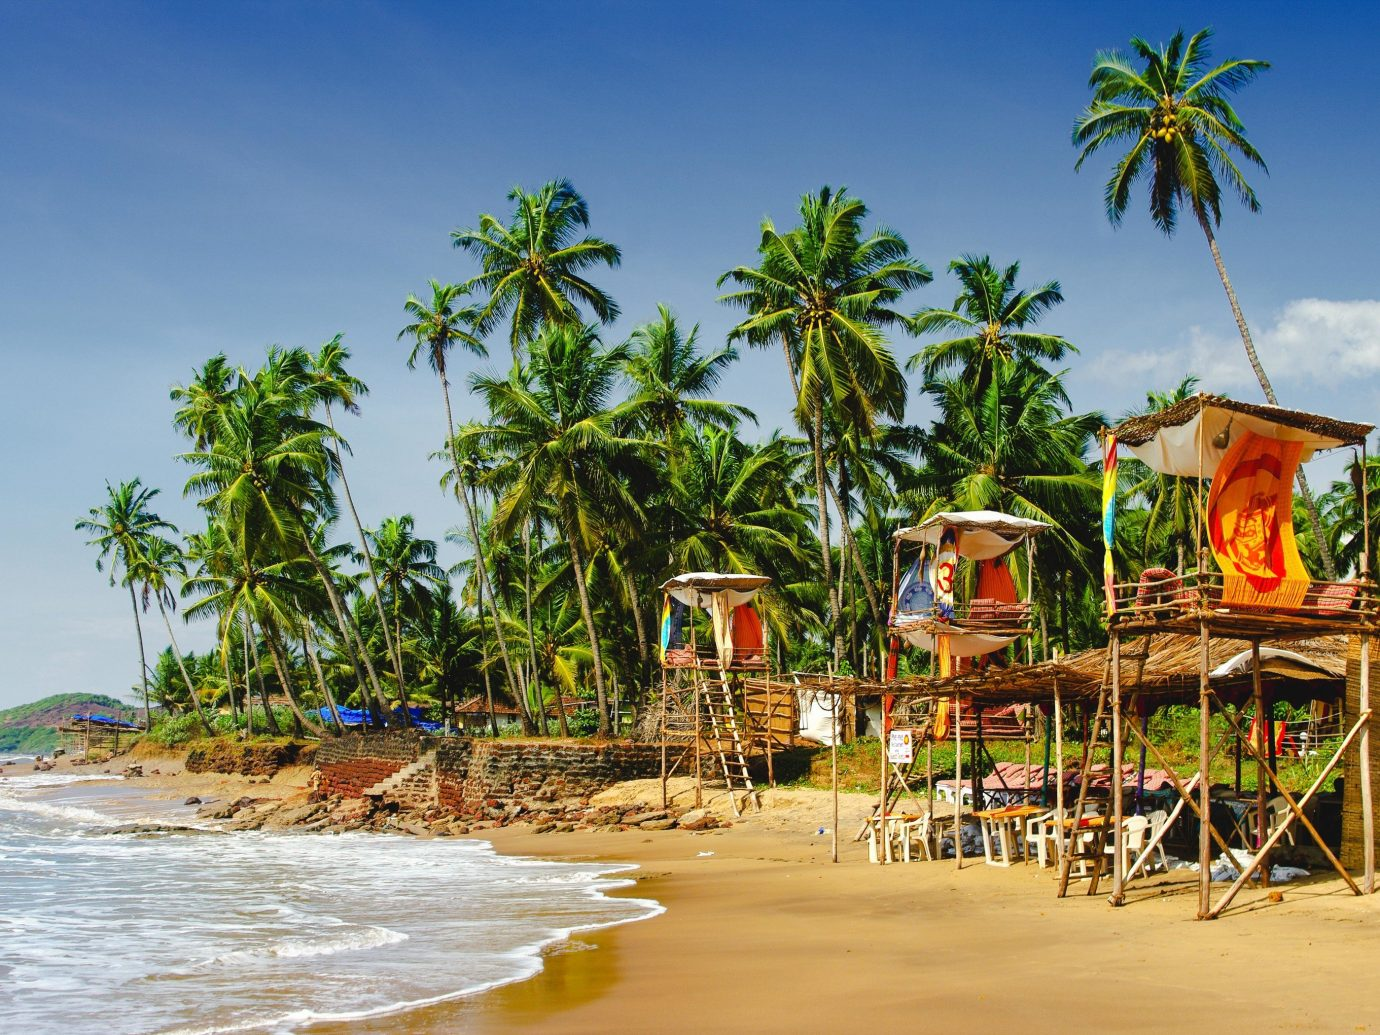 India body of water Beach palm tree arecales tropics tourism Resort tree sky vacation caribbean shore Sea leisure water Coast tourist attraction coastal and oceanic landforms Ocean